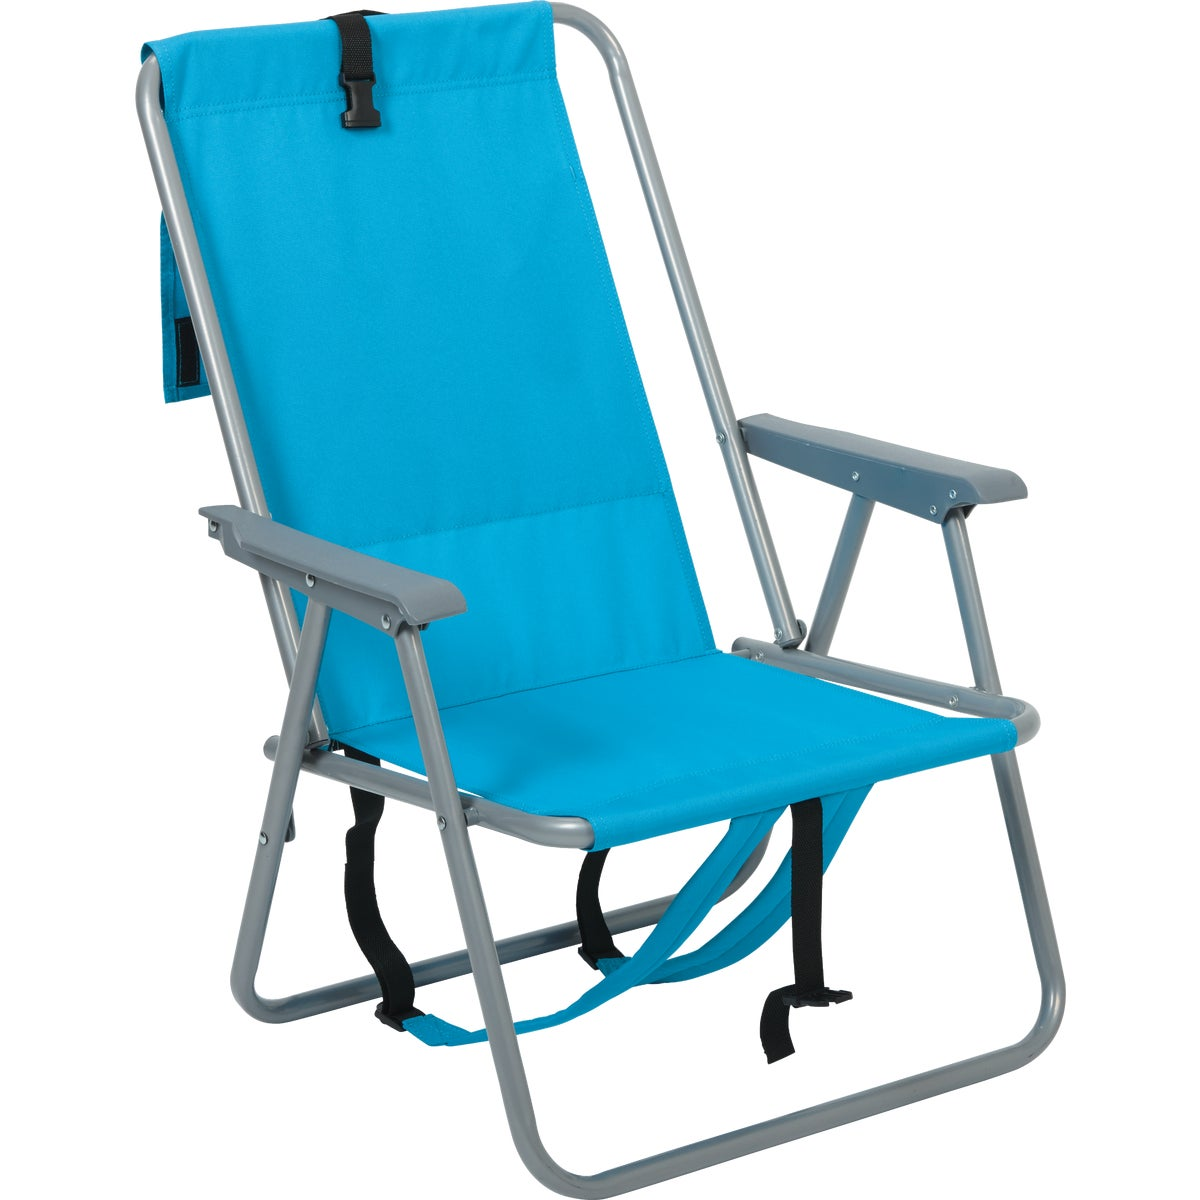 BACKPACK CHAIR - SC525-6973 by Rio Brands  Ningbo1